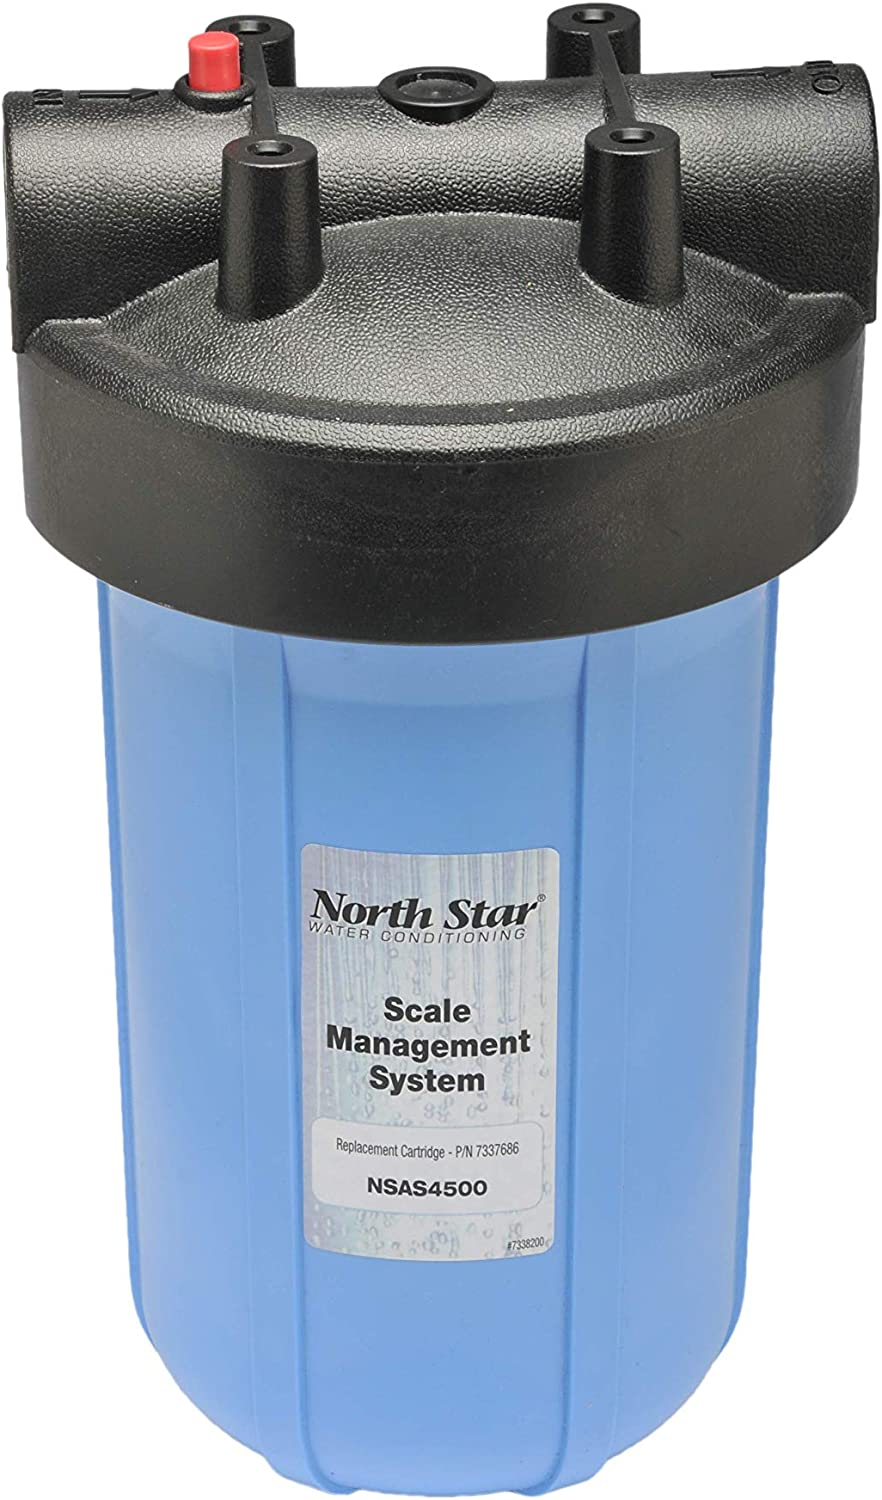 North Star NSAS 2500 Scale Management System